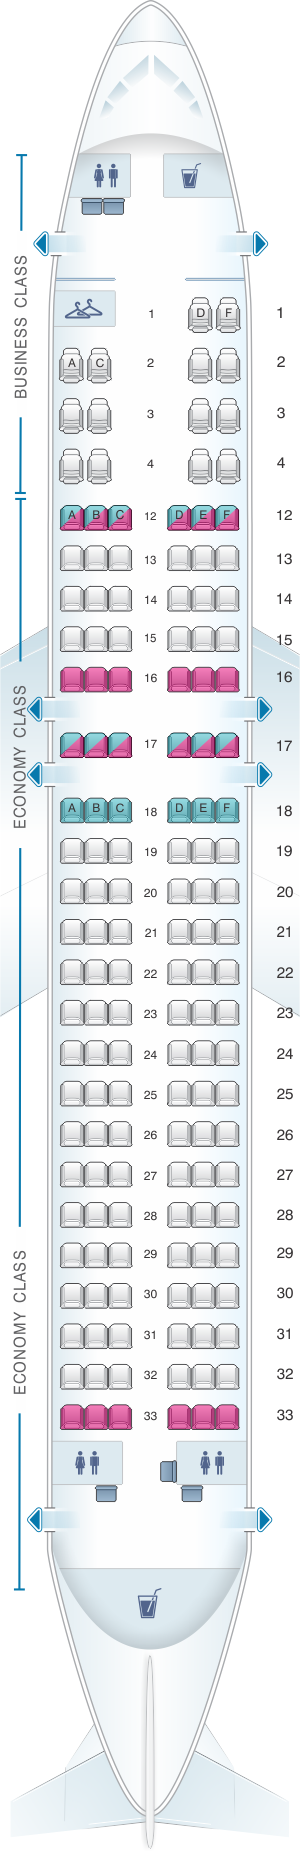 Seat map for Air Canada Airbus A320 200